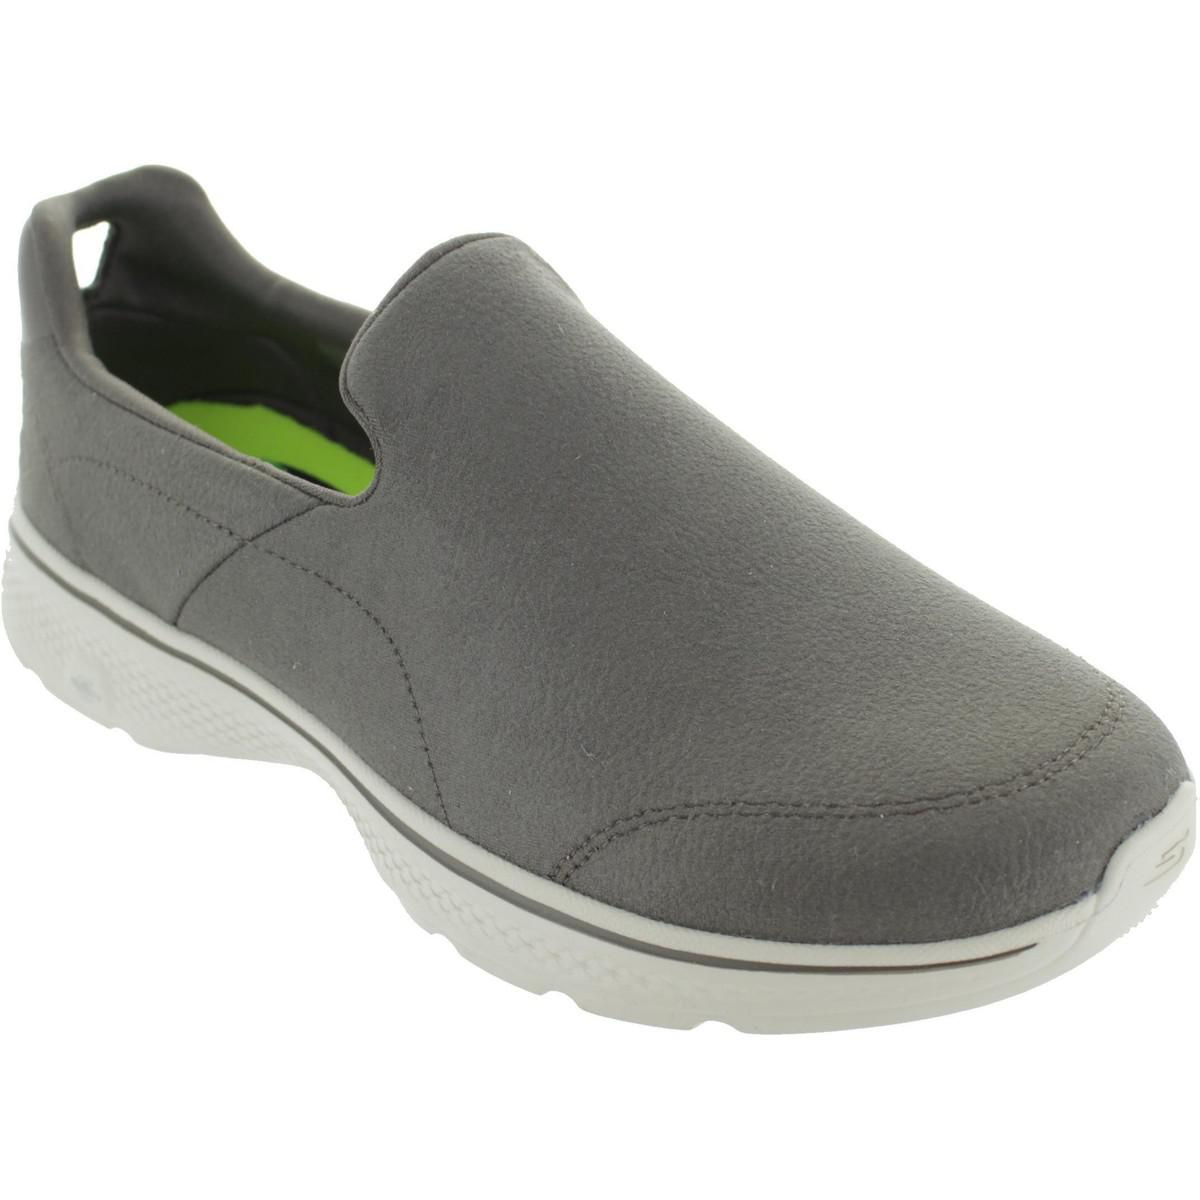 Skechers. Gray Gowalk 4 Remarkable Men's Loafers / Casual Shoes ...